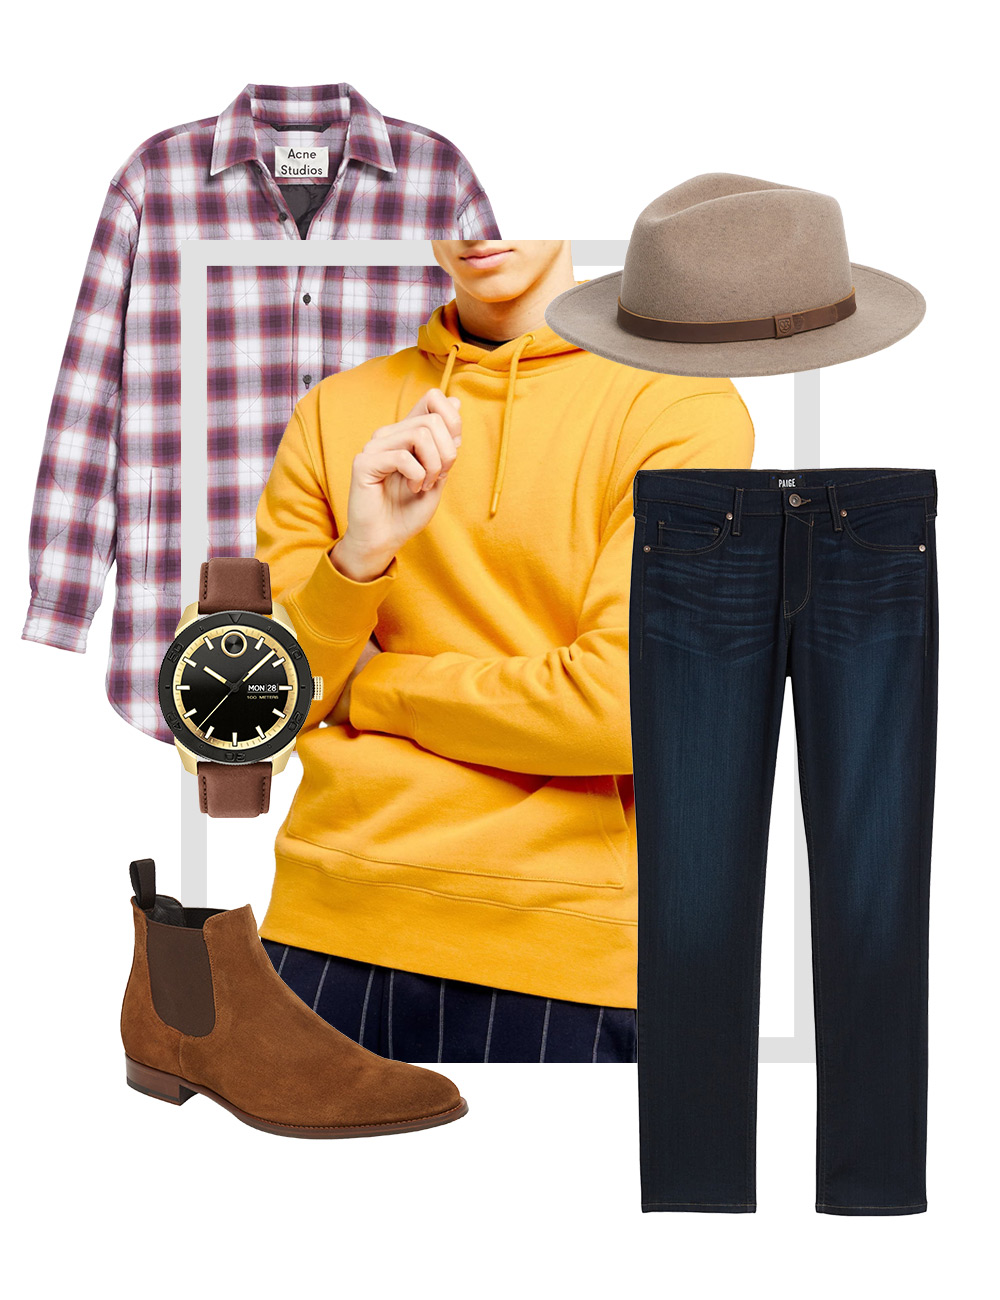 Men's plaid shirt outfit collage